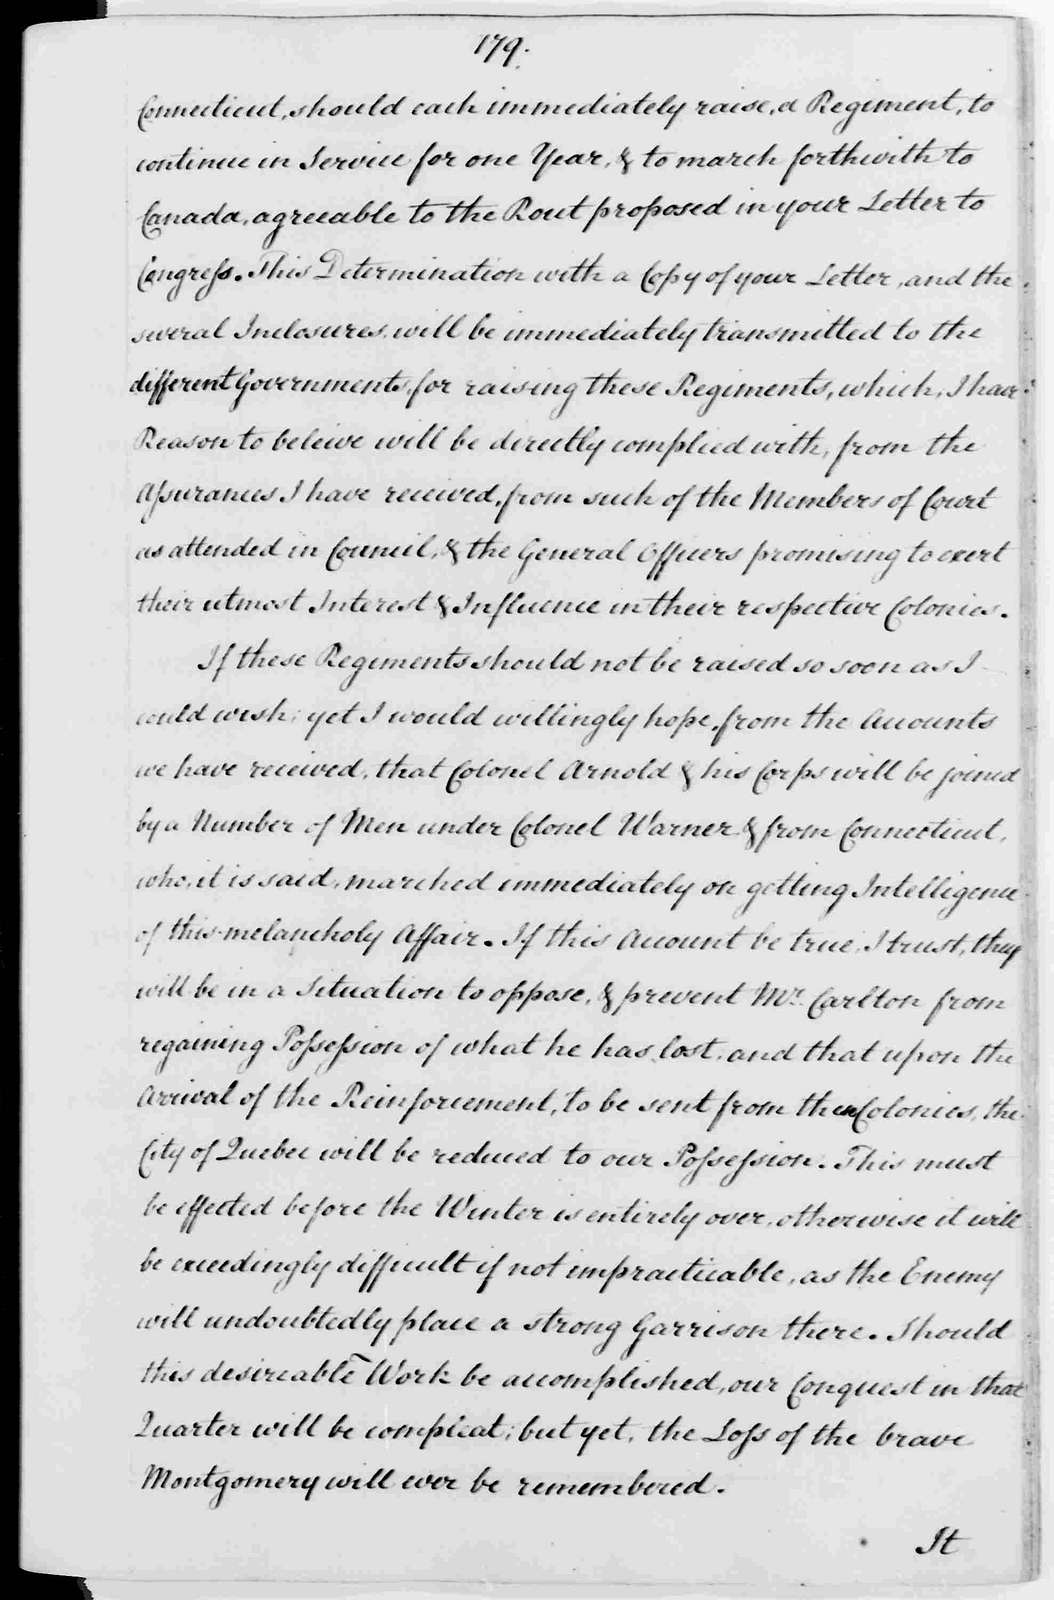 George Washington Papers, Series 3, Varick Transcripts, 1775-1785, Subseries 3B, Continental and State Military Personnel, 1775-1783, Letterbook 1: June 25, 1775 - July 31, 1776